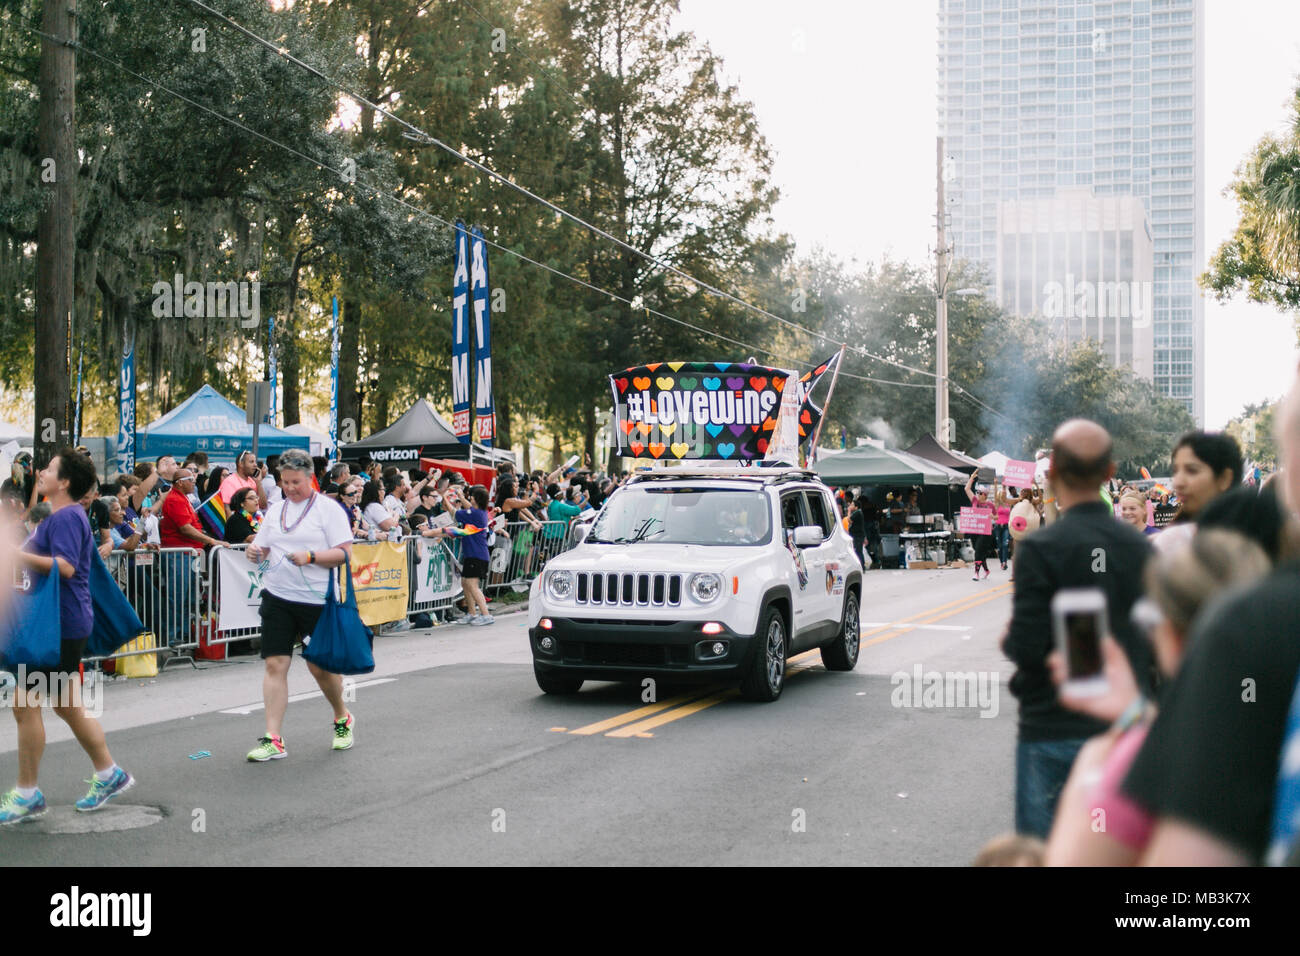 Love wins car at Orlando Pride Parade (2016). - Stock Image